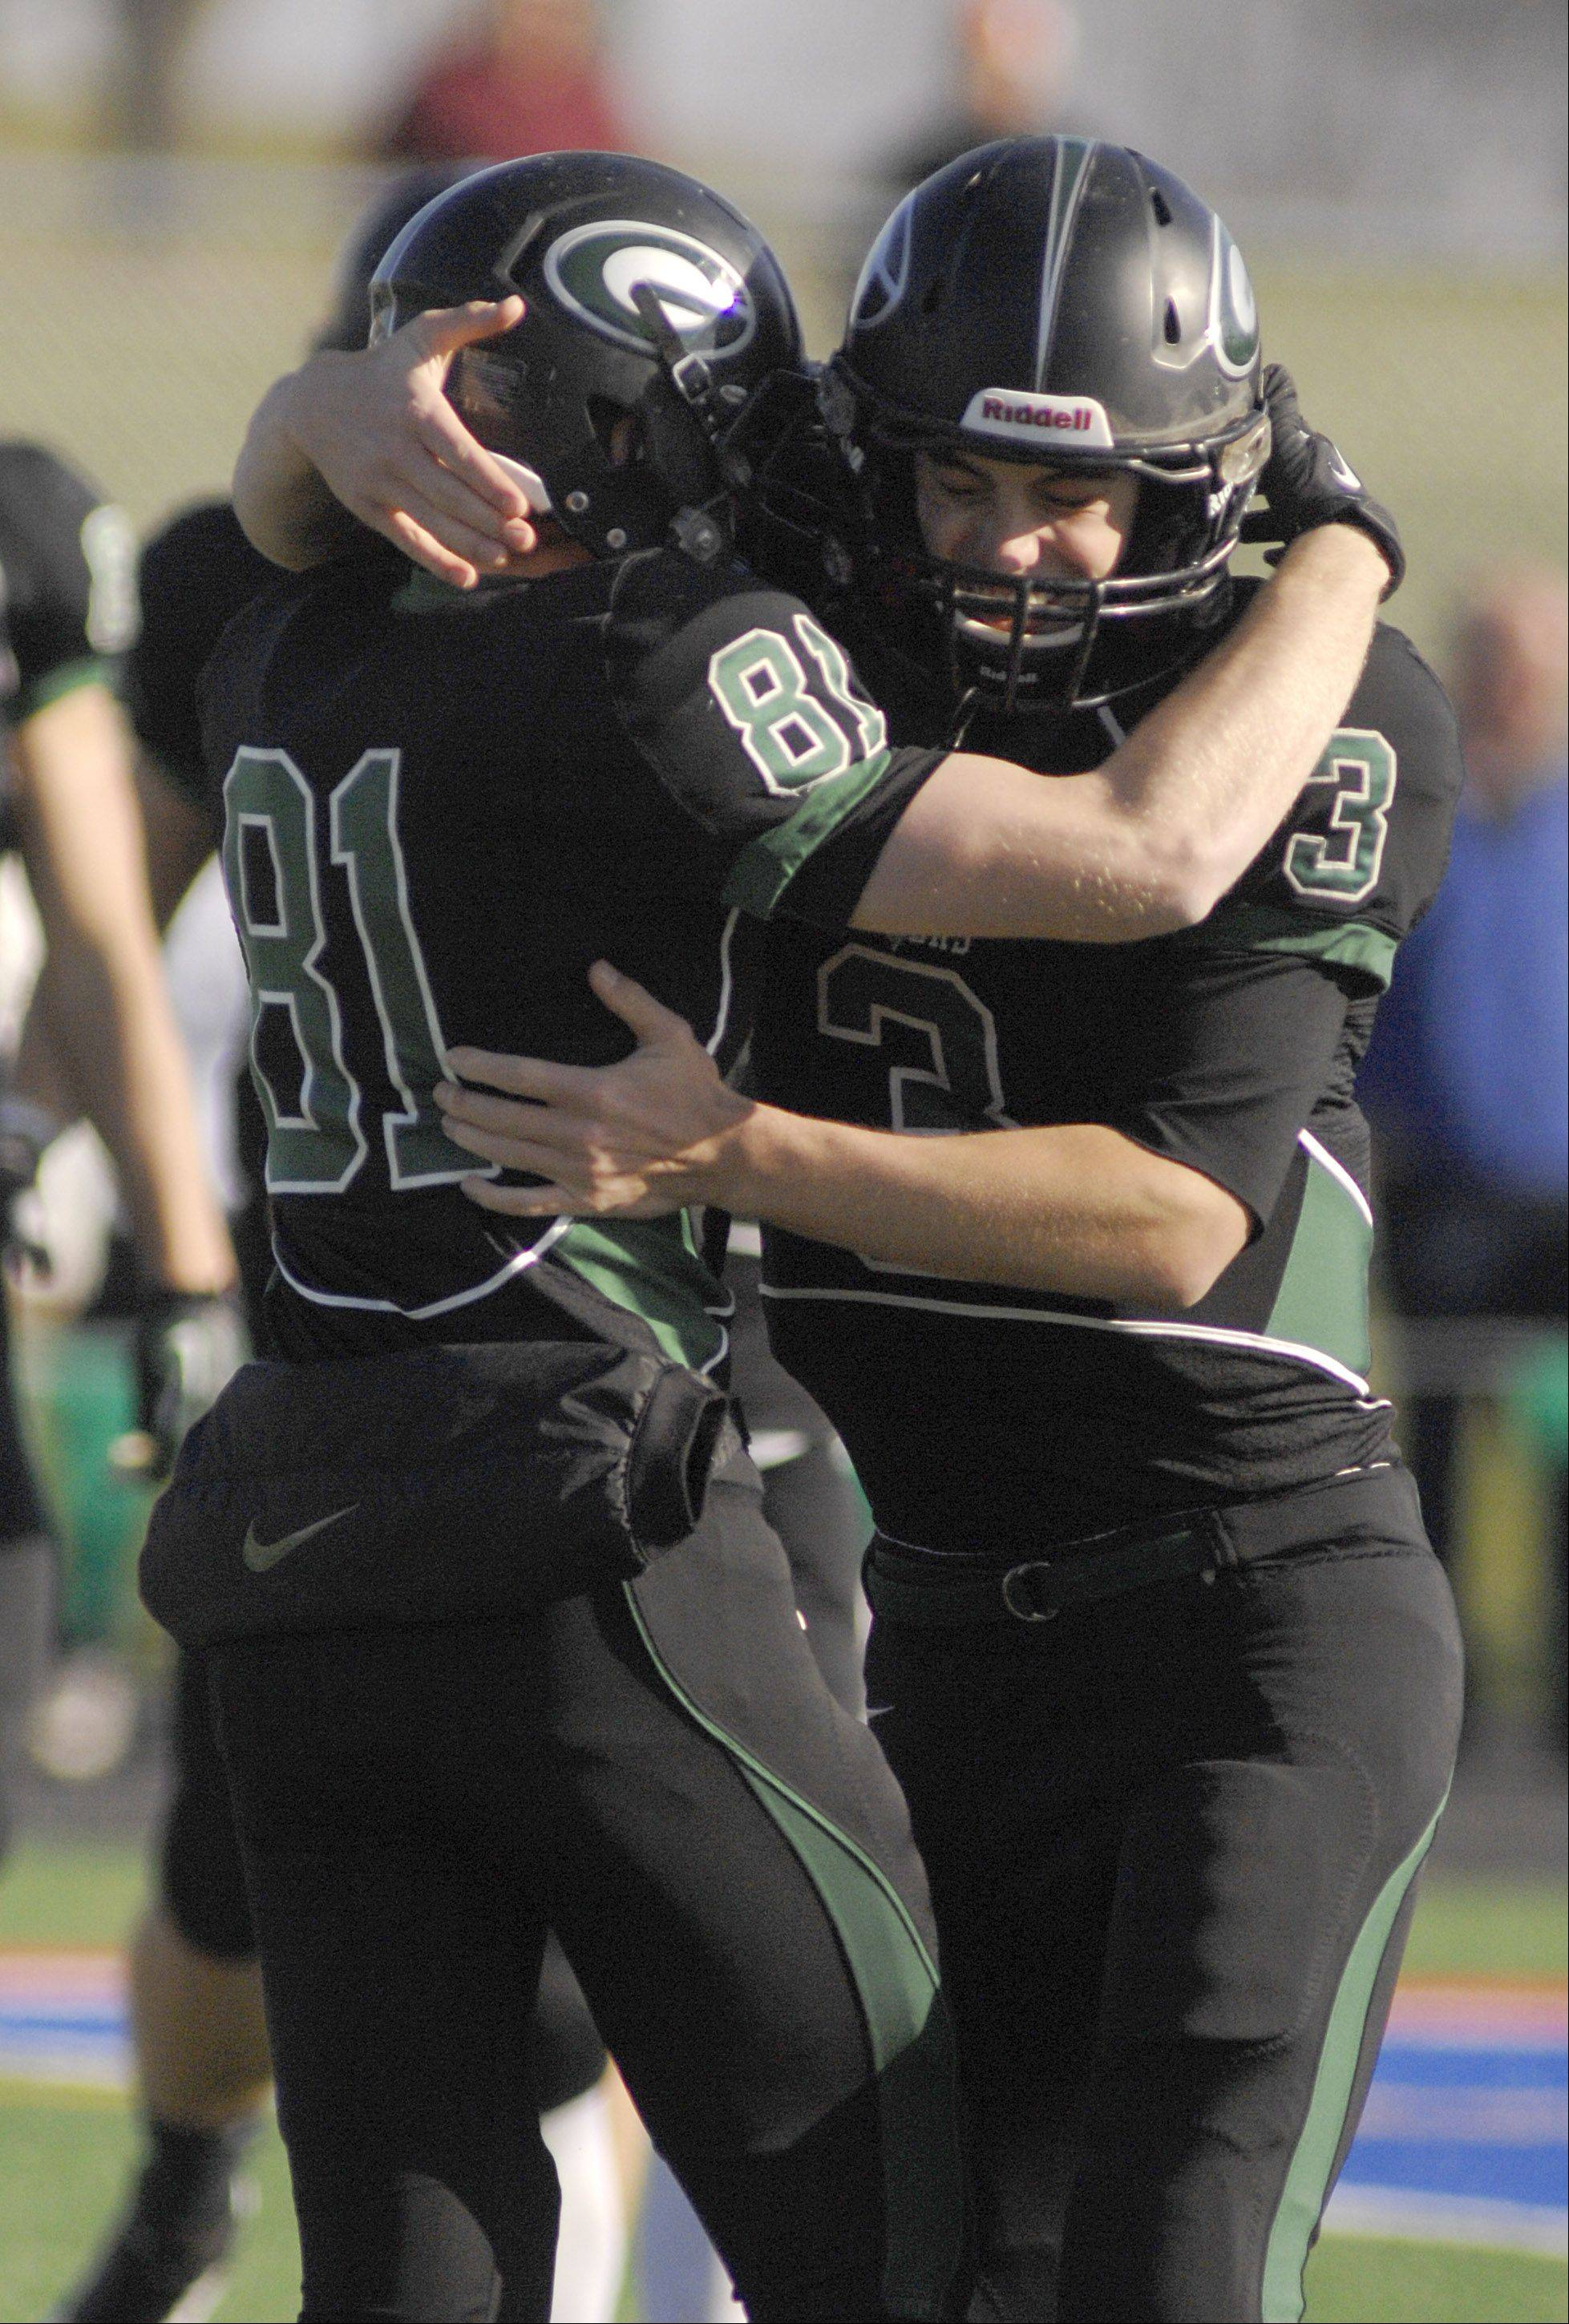 Glenbard West's Nate Hokenson (81) gets congratulated by teammate Henry Haeffner after Hokenson scored the first touchdown of the 7A semi finals game in first seconds of the first quarter on Saturday, Nov. 17.